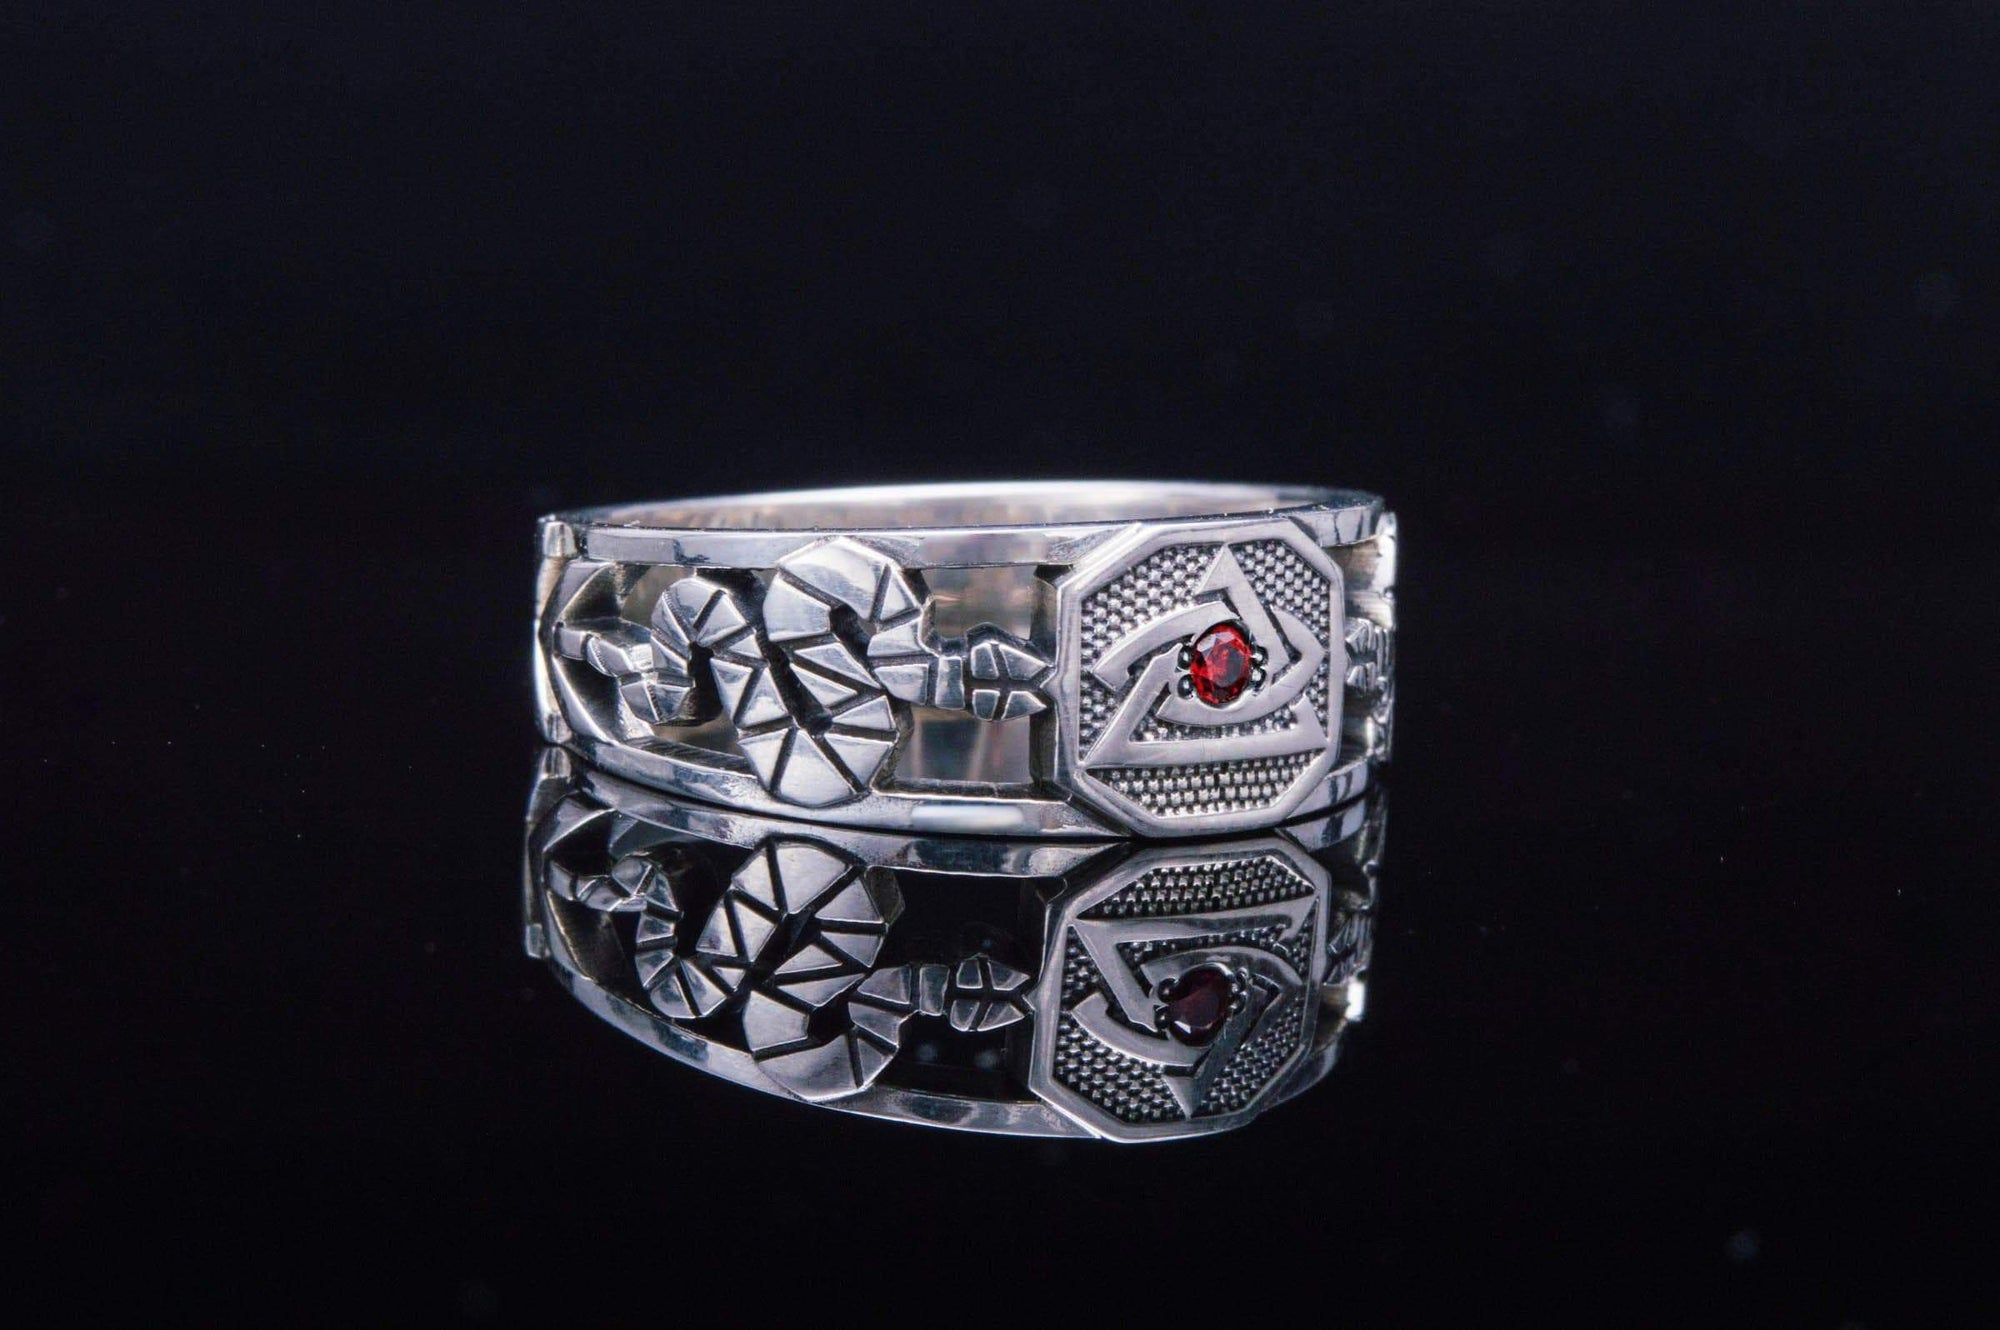 Rings Freemason Eye of Providence Geometric Ring with Red Cubic Zirconia Ancient Treasures Ancientreasures Viking Odin Thor Mjolnir Celtic Ancient Egypt Norse Norse Mythology